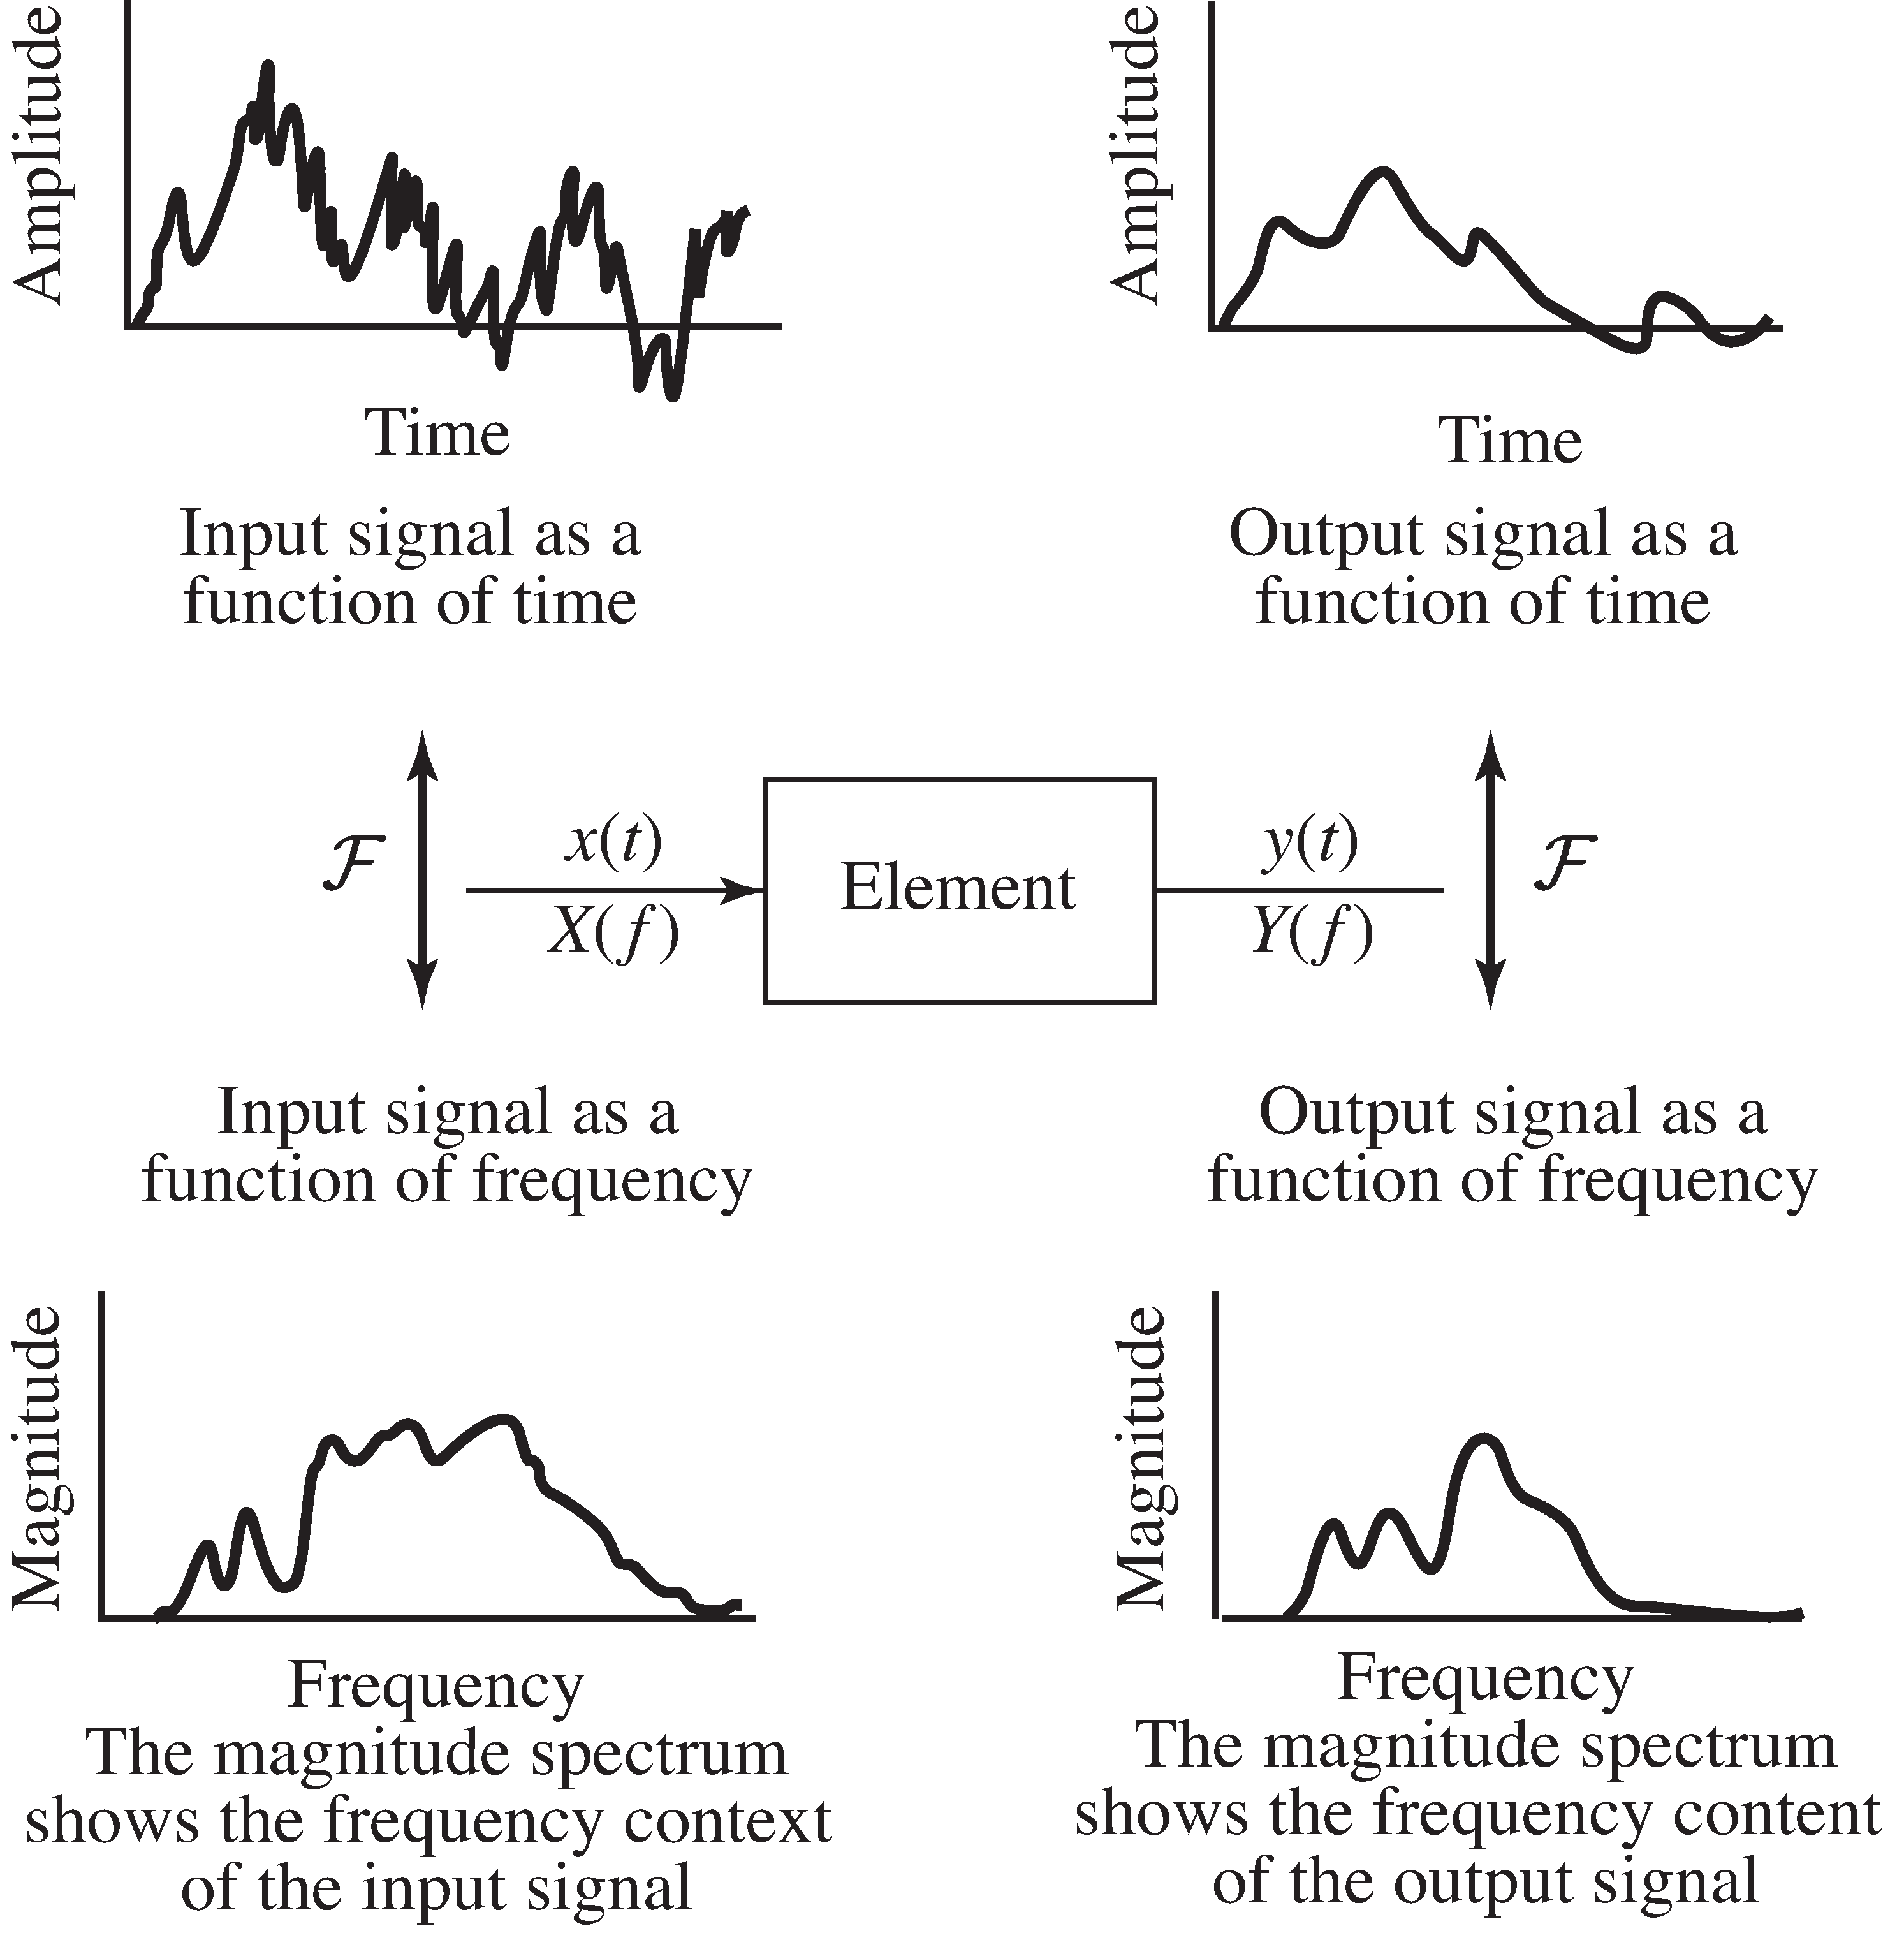 The element transforms the input signal x into the output signal y. The action of an element can be thought of in terms of its effect on the signals in time, or (via the Fourier transform) in terms of its effect on the spectra of the signals.